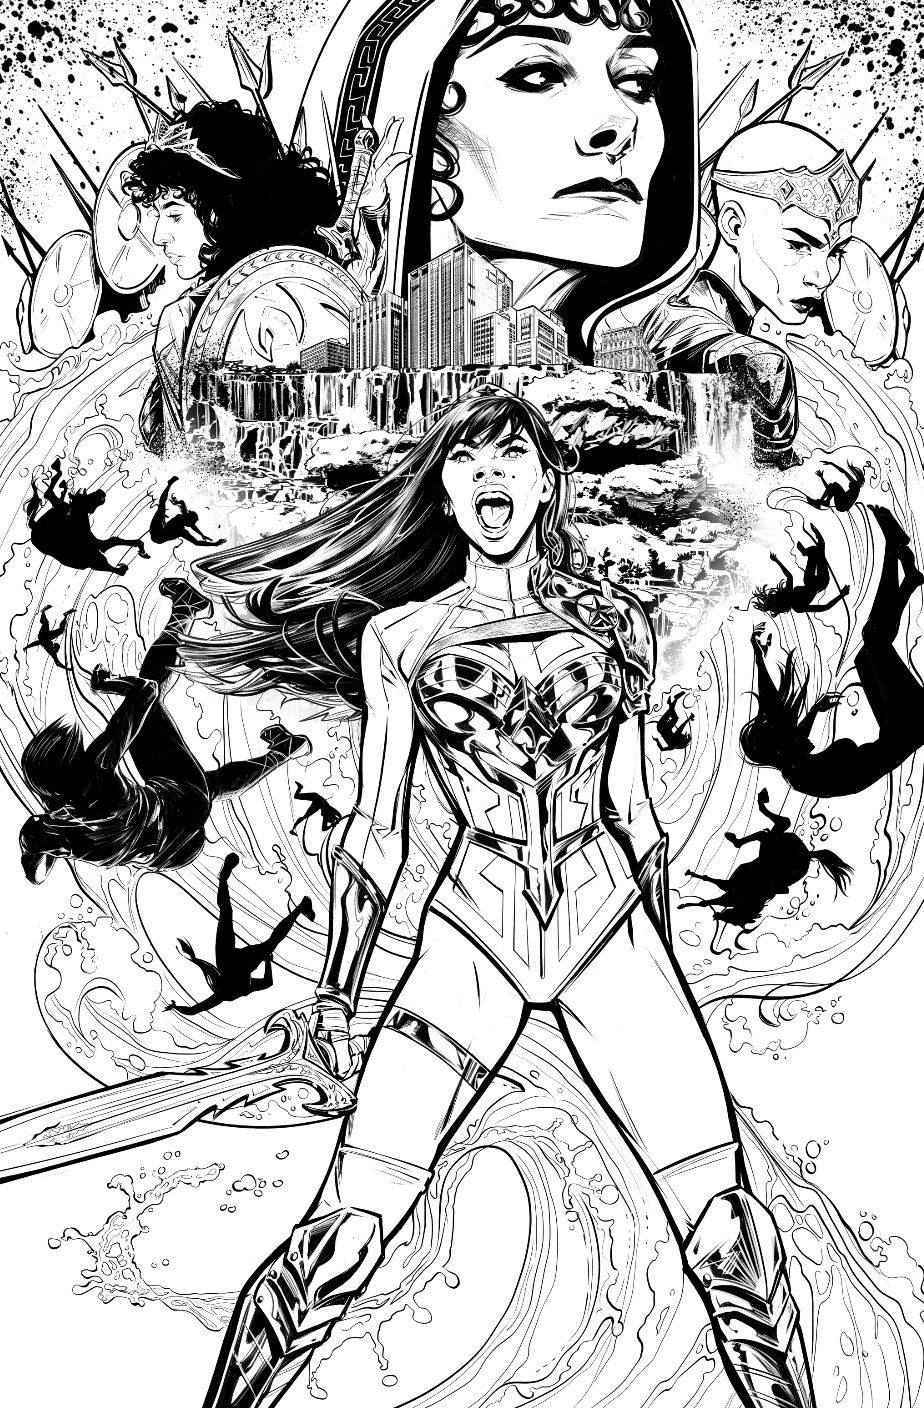 Yara Floor screams at the sky, sword in hand, surrounded by mysterious amazon faces and a crashing whirlpool of water, on the black-and-white cover of Wonder Girl #1, DC Comics (2021).